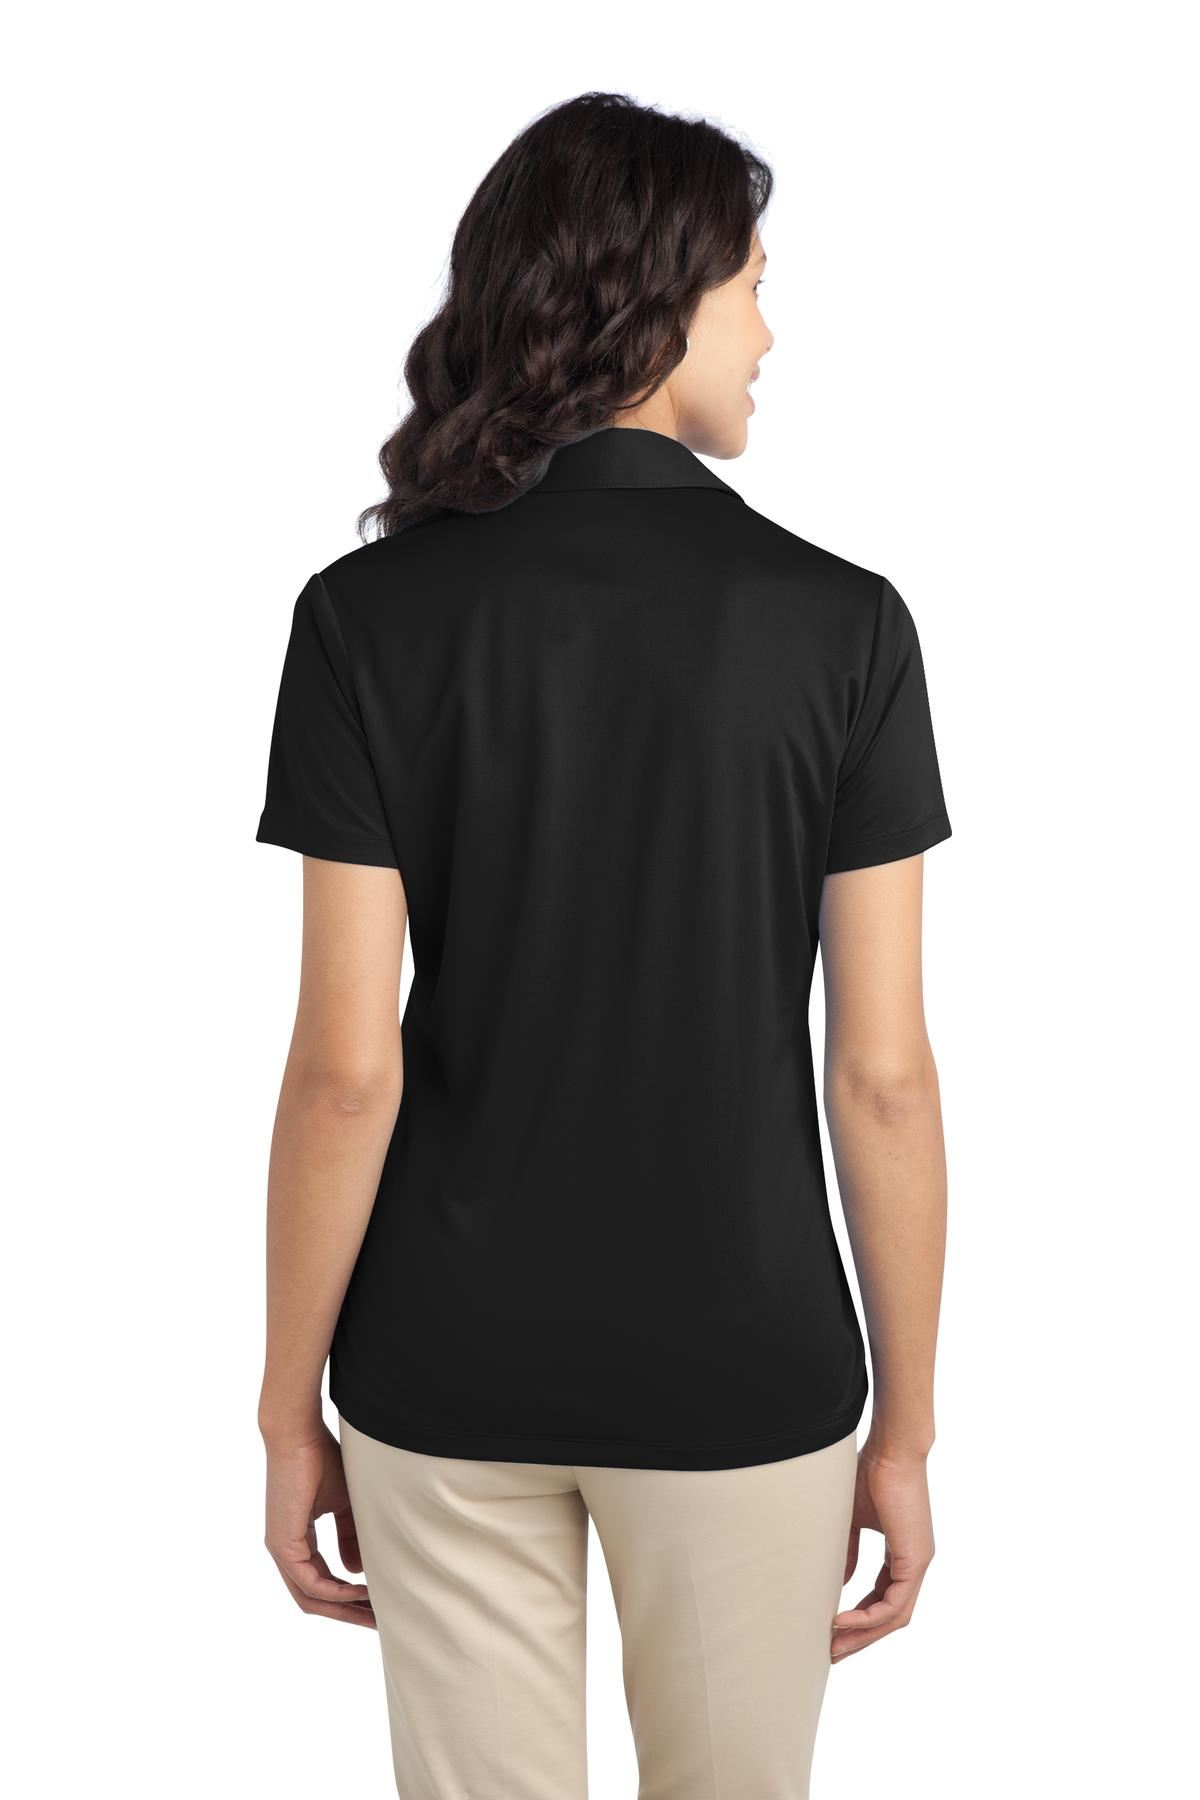 Port-Authority-Womens-Dri-Fit-SIlk-Touch-Performance-Polo-Golf-Shirt-M-L540 thumbnail 5